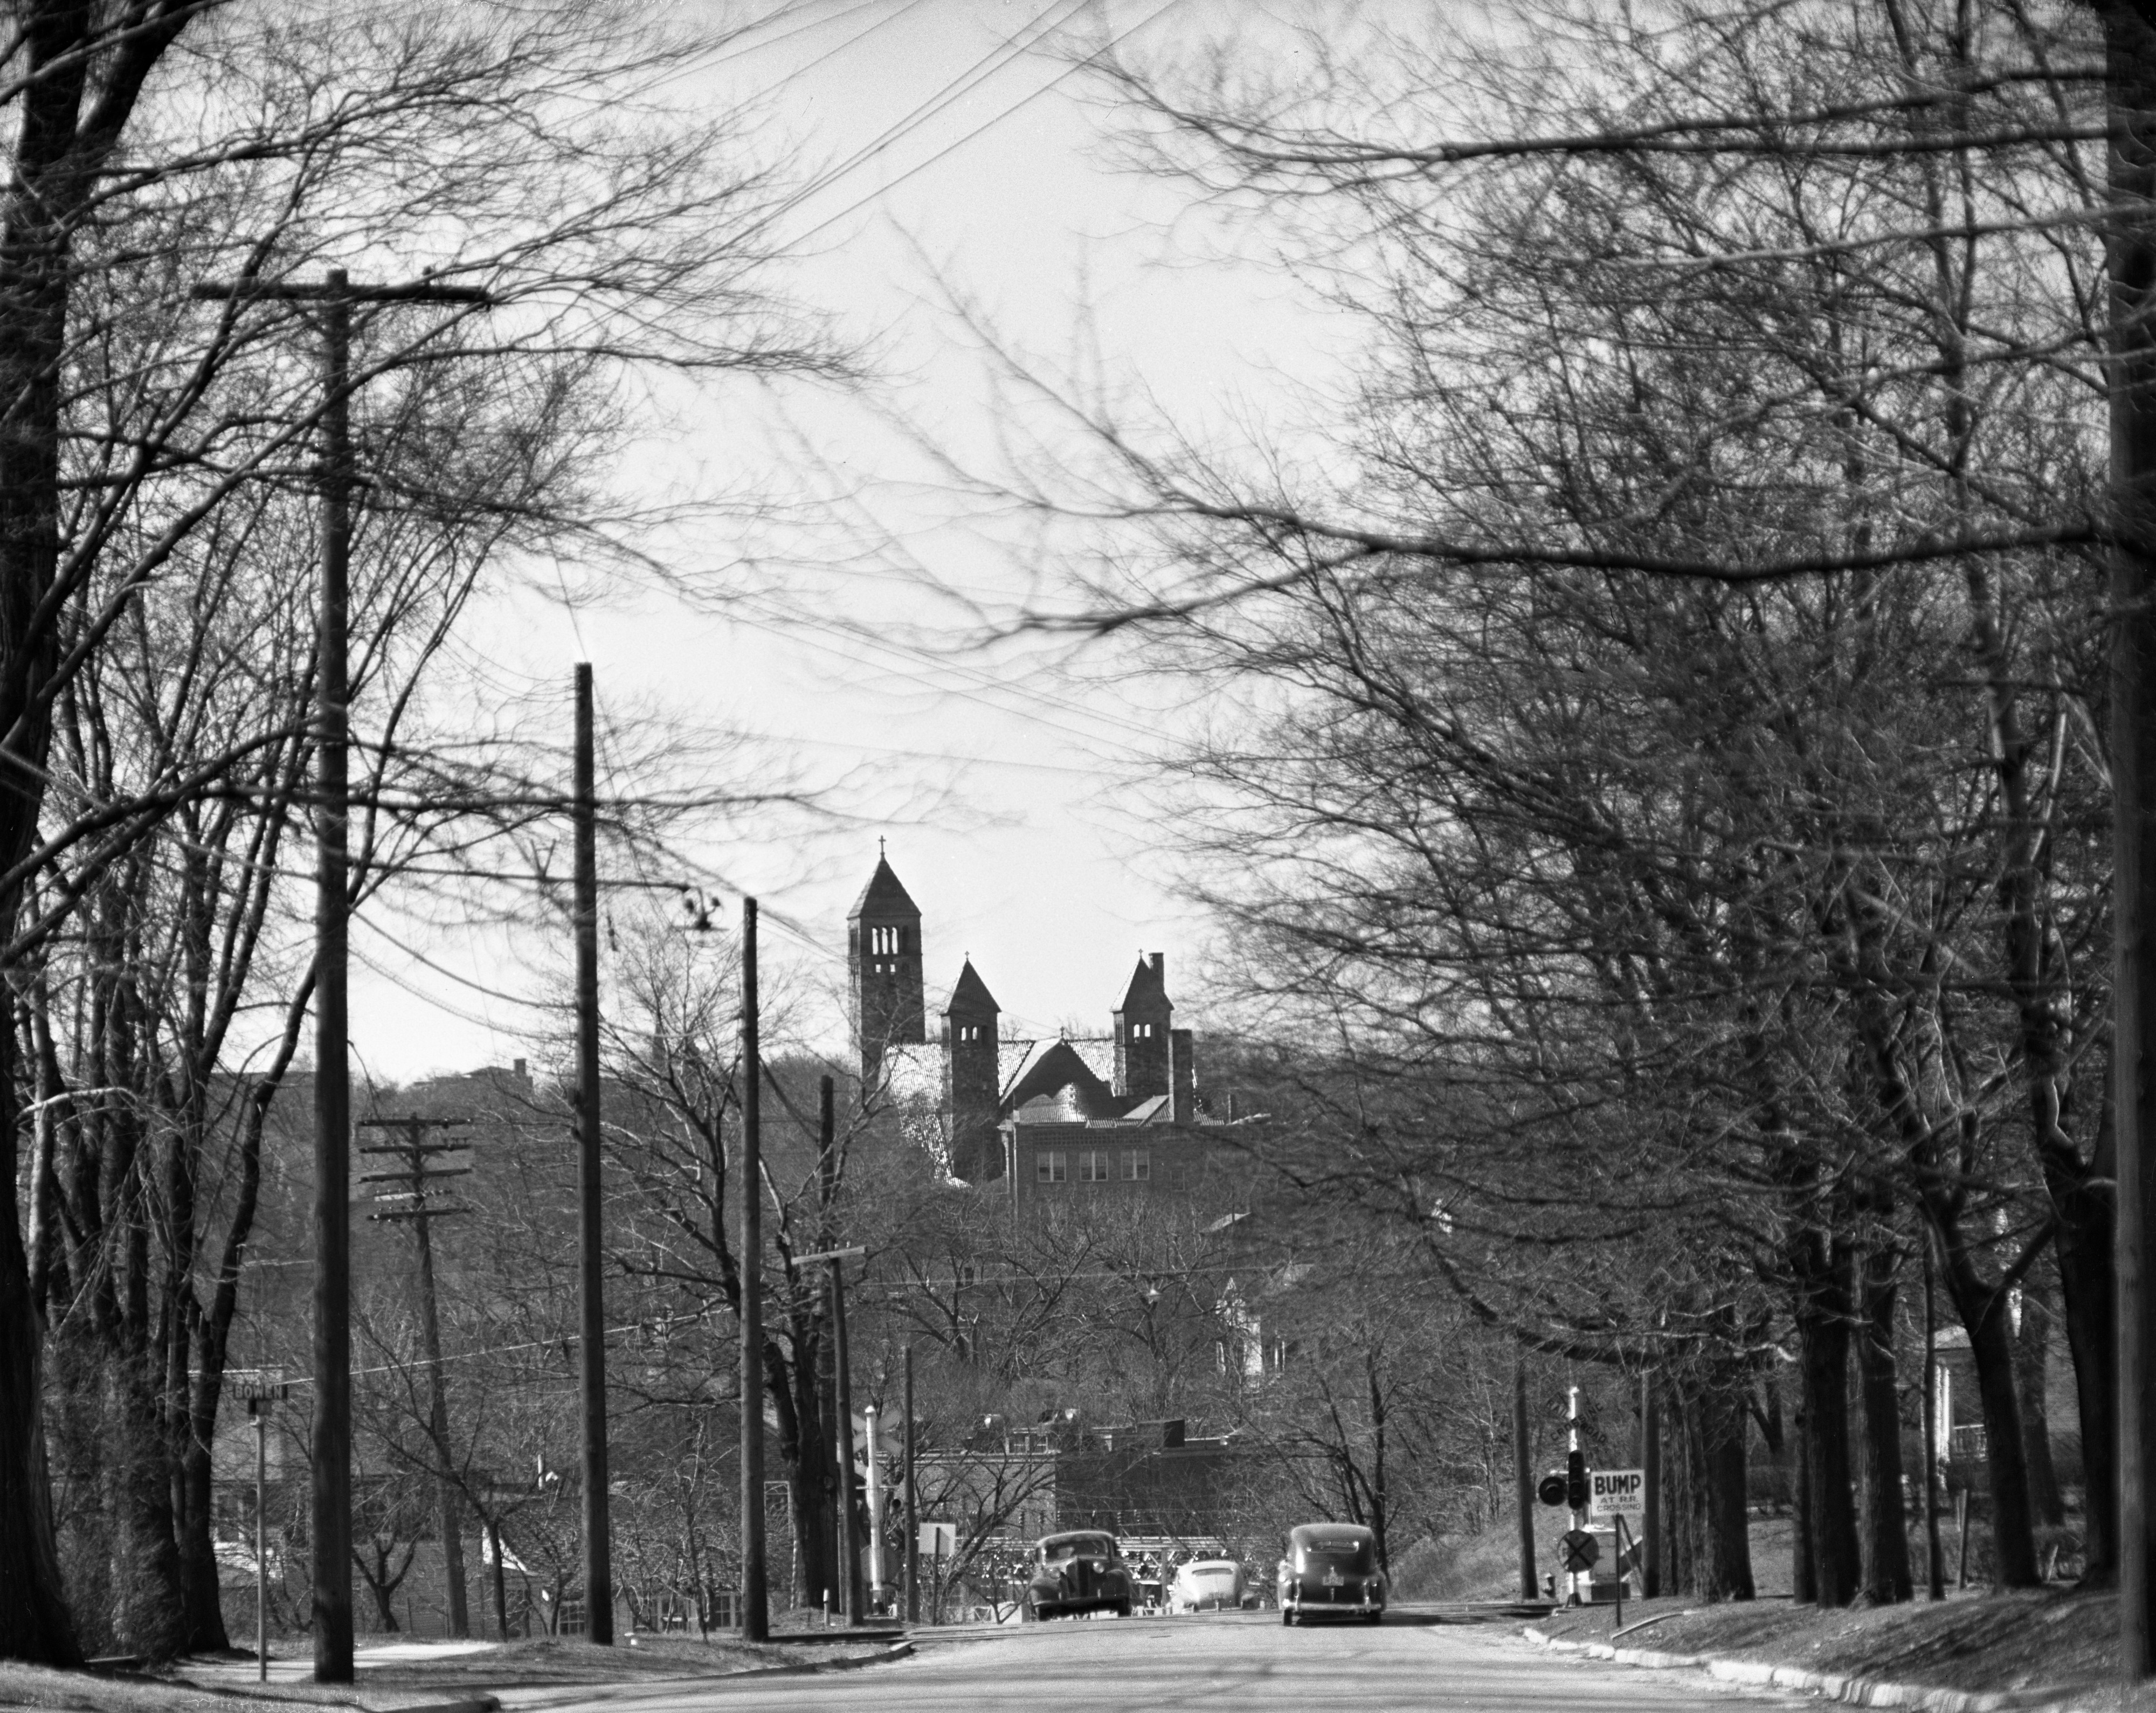 St. Thomas Church viewed from Pontiac Trail, April 1950 image